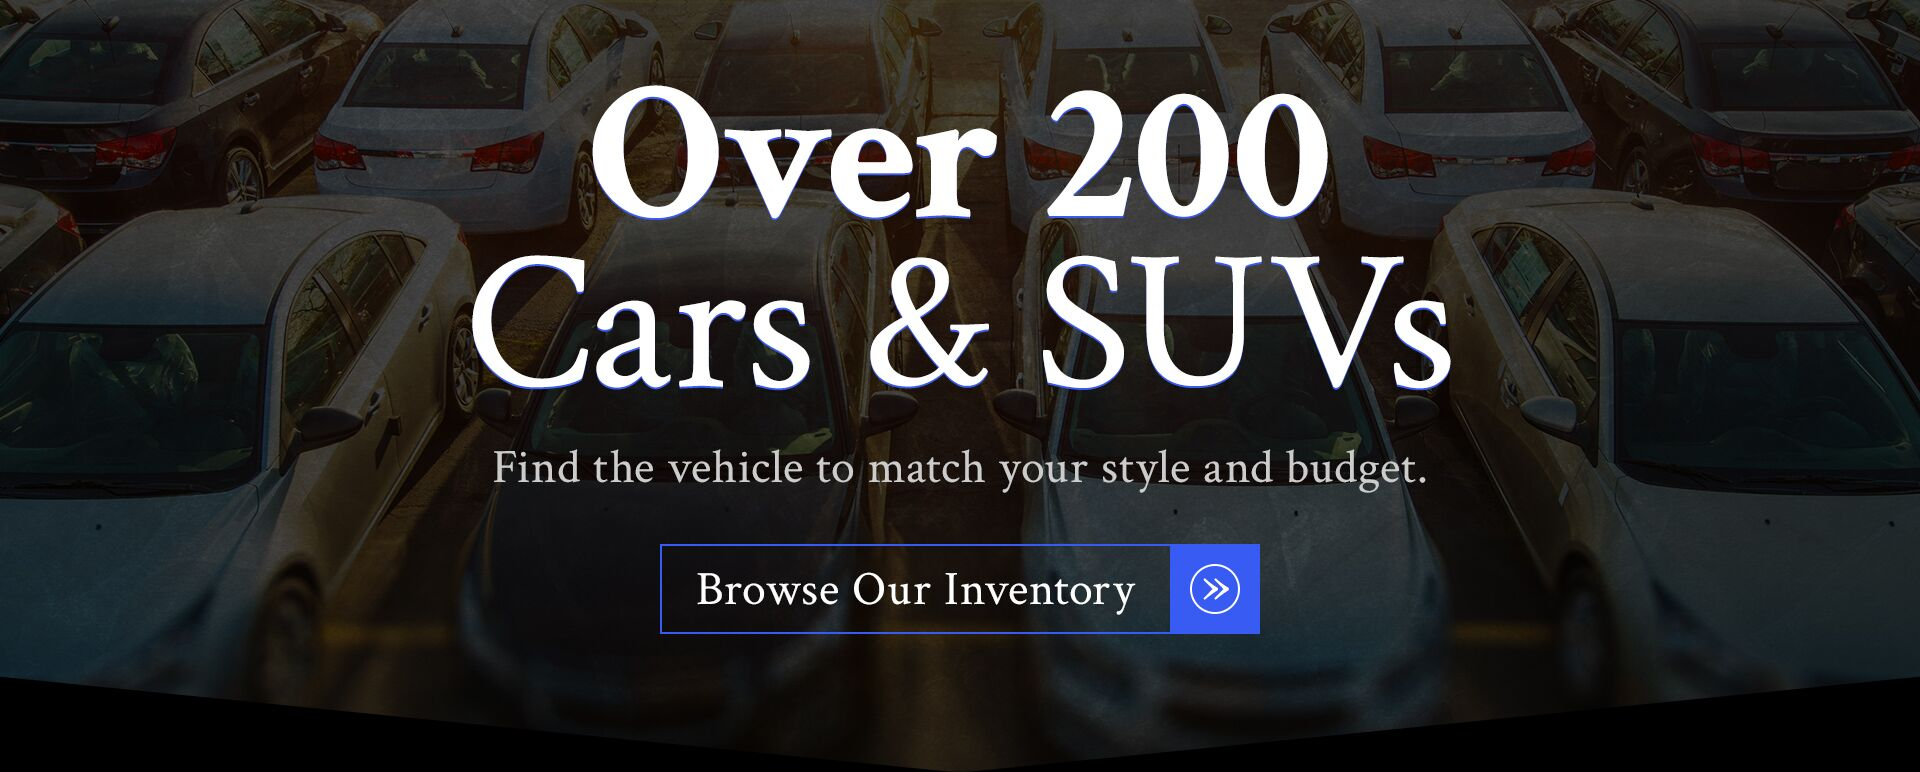 Over 200 Cars & SUVs